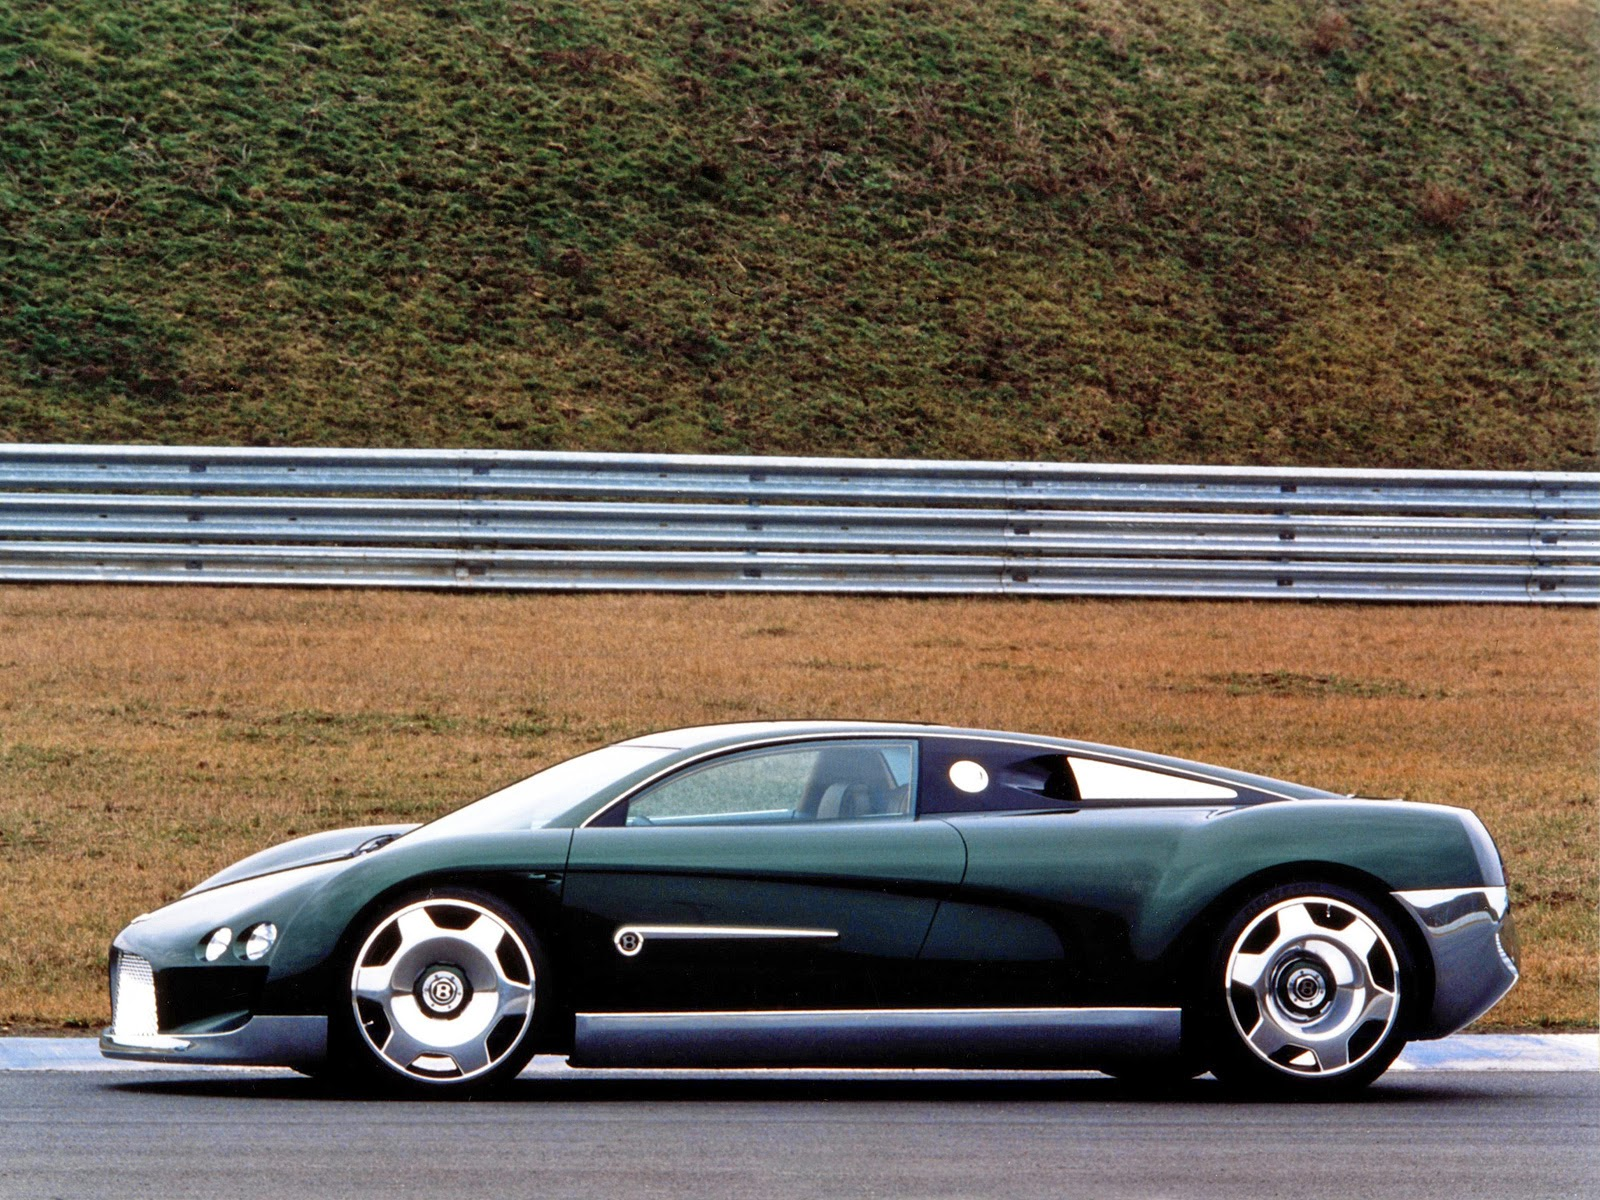 Fab wheels digest fwd 1999 bentley hunaudires concept a concept car built by bentley for the 1999 geneva salon international de lauto it is powered by a volkswagen 80 litre w16 engine vanachro Images